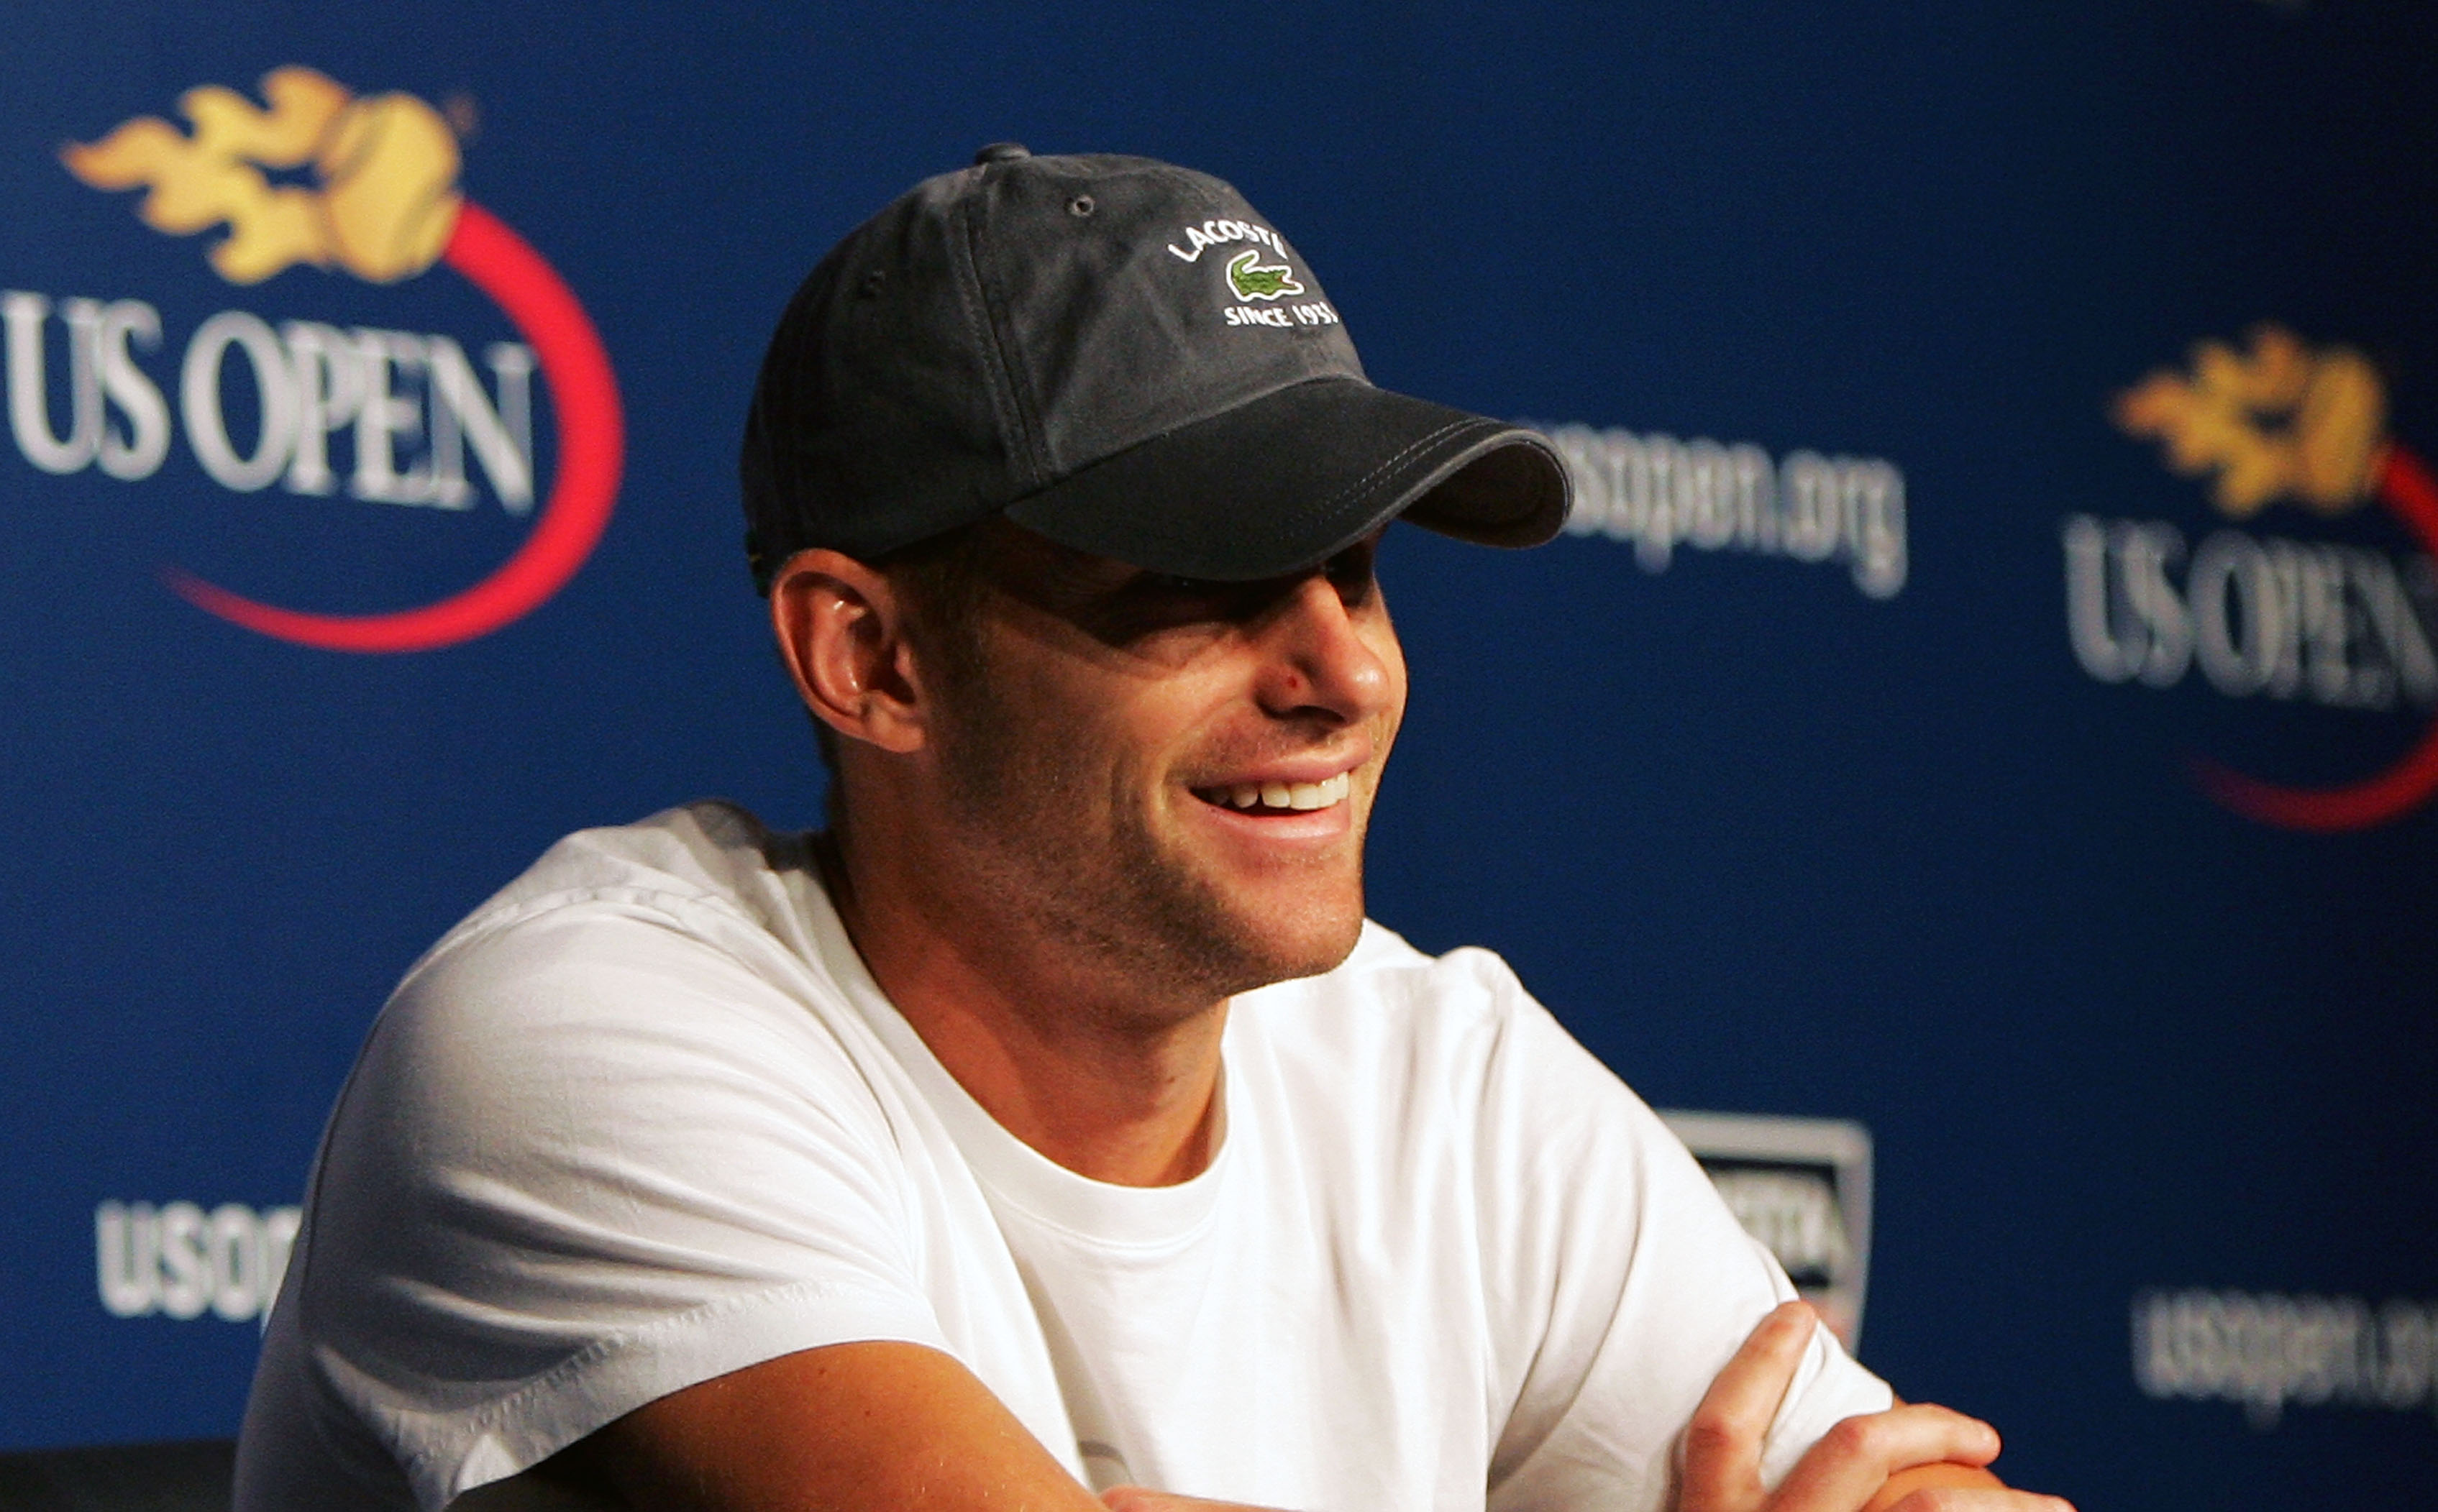 buy online 3573b 837b2 NEW YORK - AUGUST 28  Andy Roddick talks to the media during a press  conference